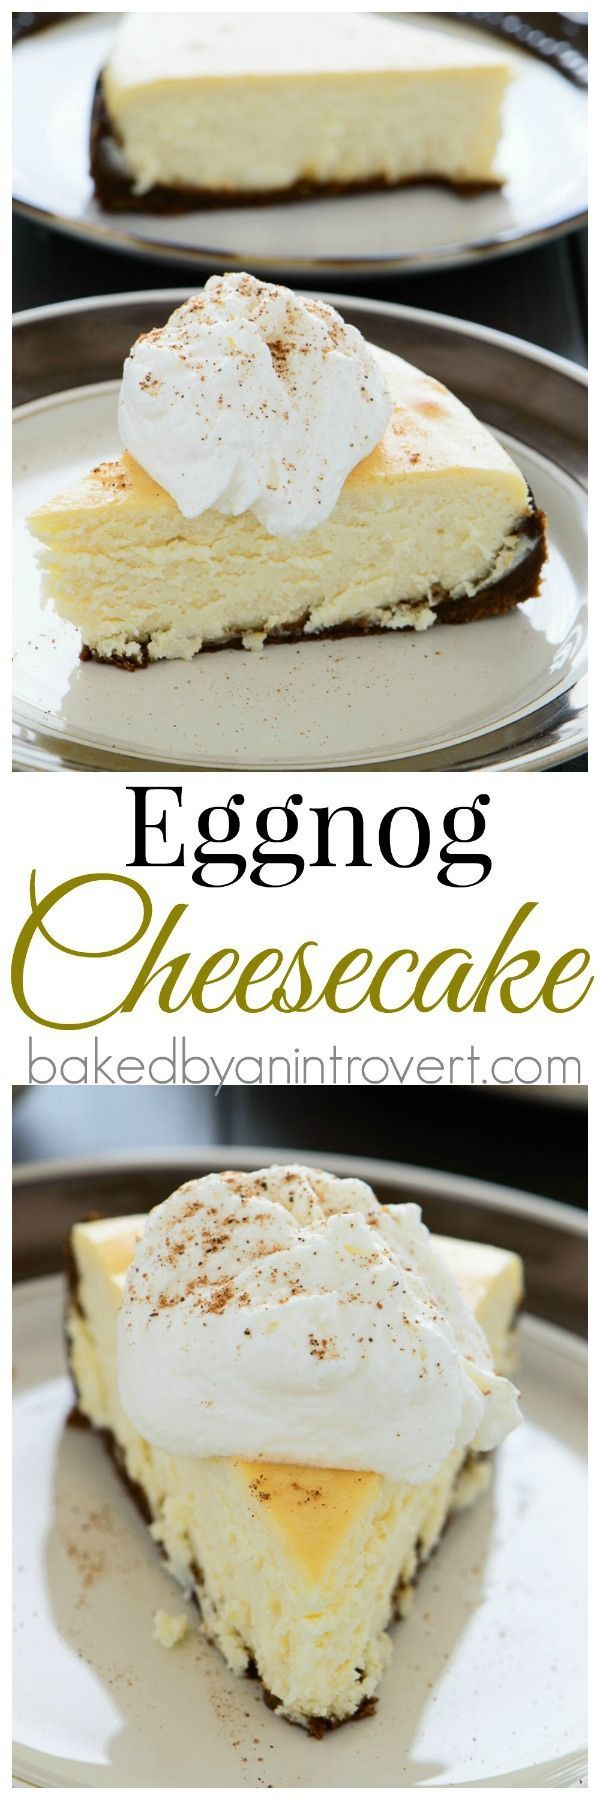 17 Best ideas about Eggnog Cheesecake on Pinterest ...